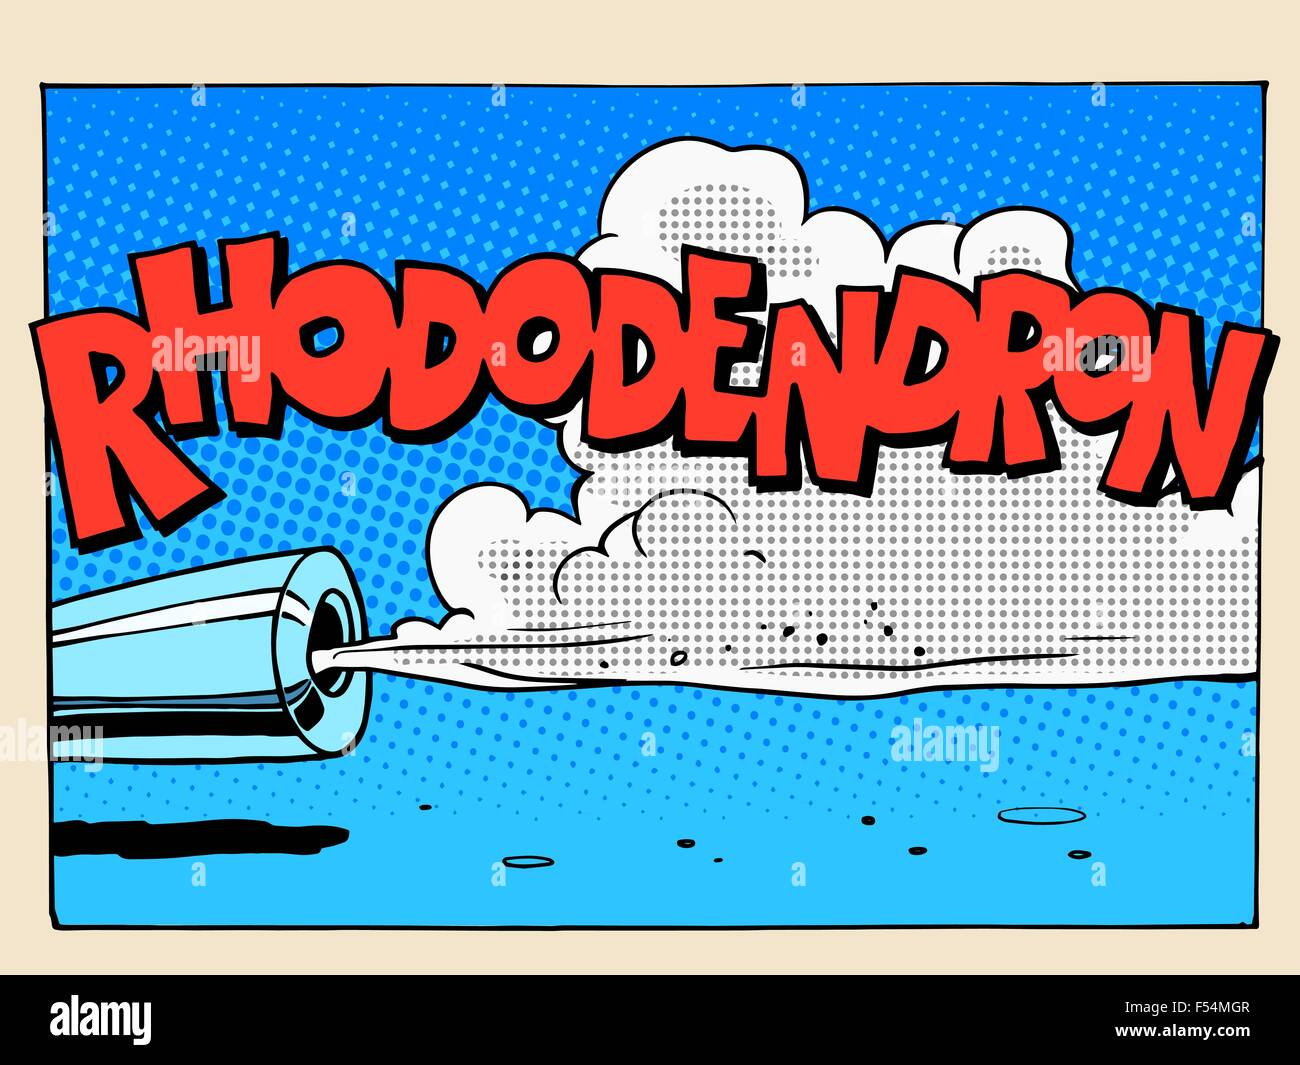 Rhododendron sound motor comic style lettering - Stock Vector